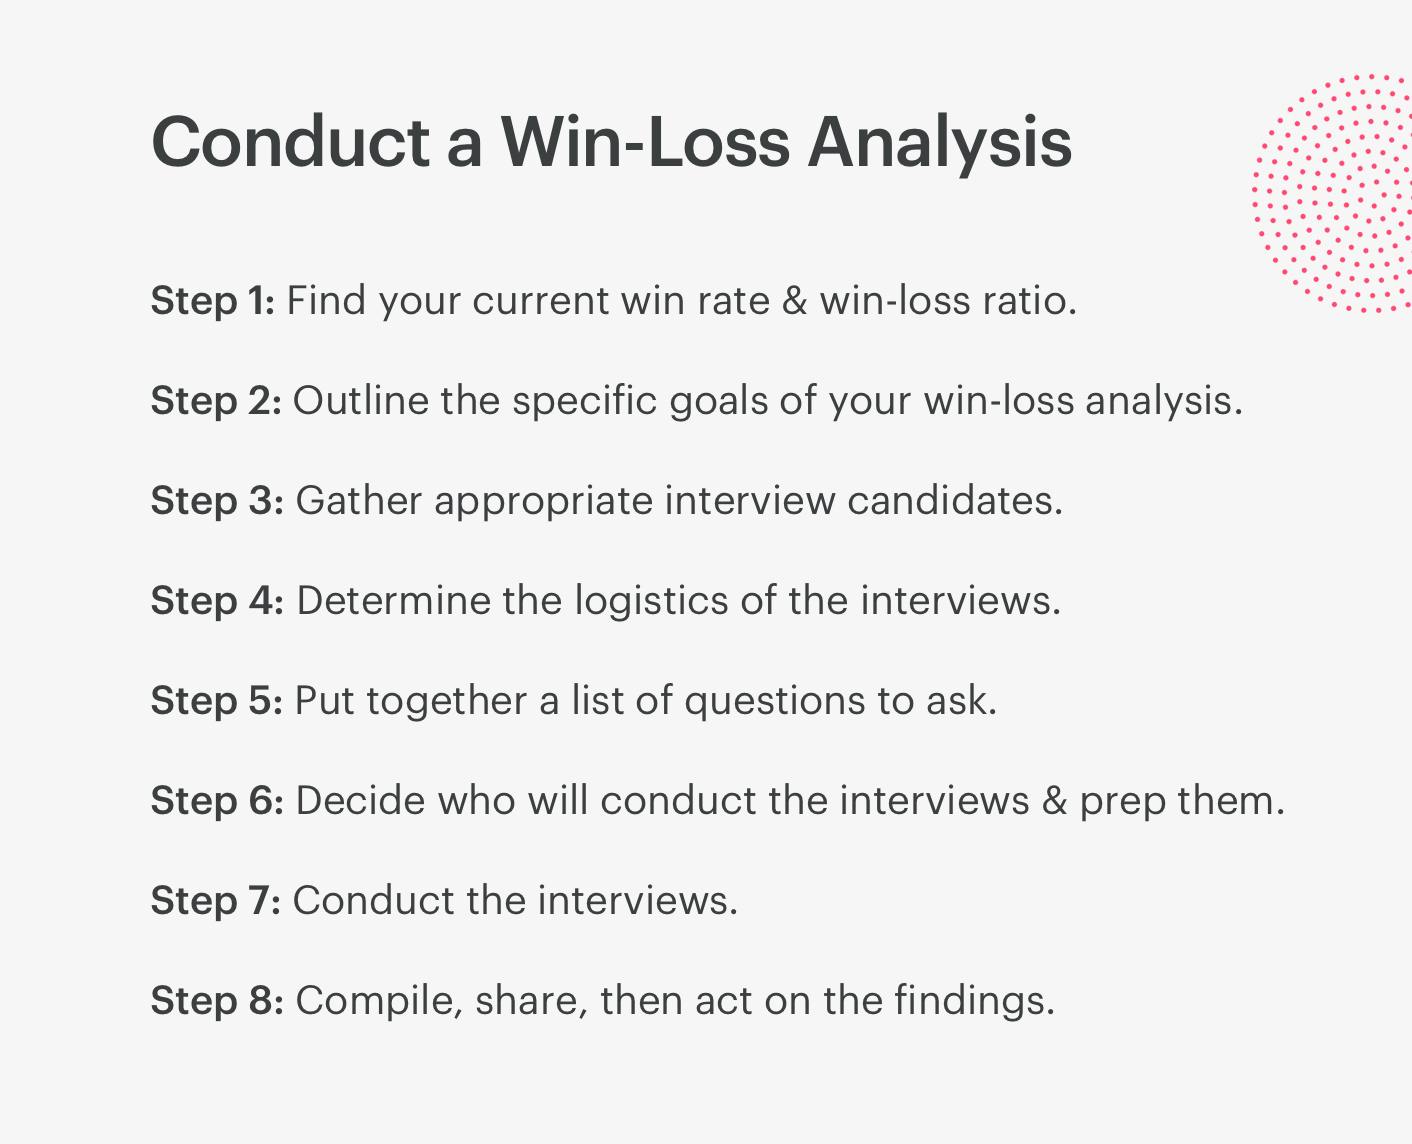 how to conduct win-loss analysis: Step 1: Find your current win rate + win-loss ratio. Step 2: Outline the specific goals of your win-loss analysis. Step 3: Gather appropriate interview candidates. Step 4: Determine the logistics of the interviews. Step 5: Put together a list of questions to ask. Step 6: Decide who will conduct the interviews + prep them. Step 7: Conduct the interviews. Step 8: Compile, share, then act on the findings.